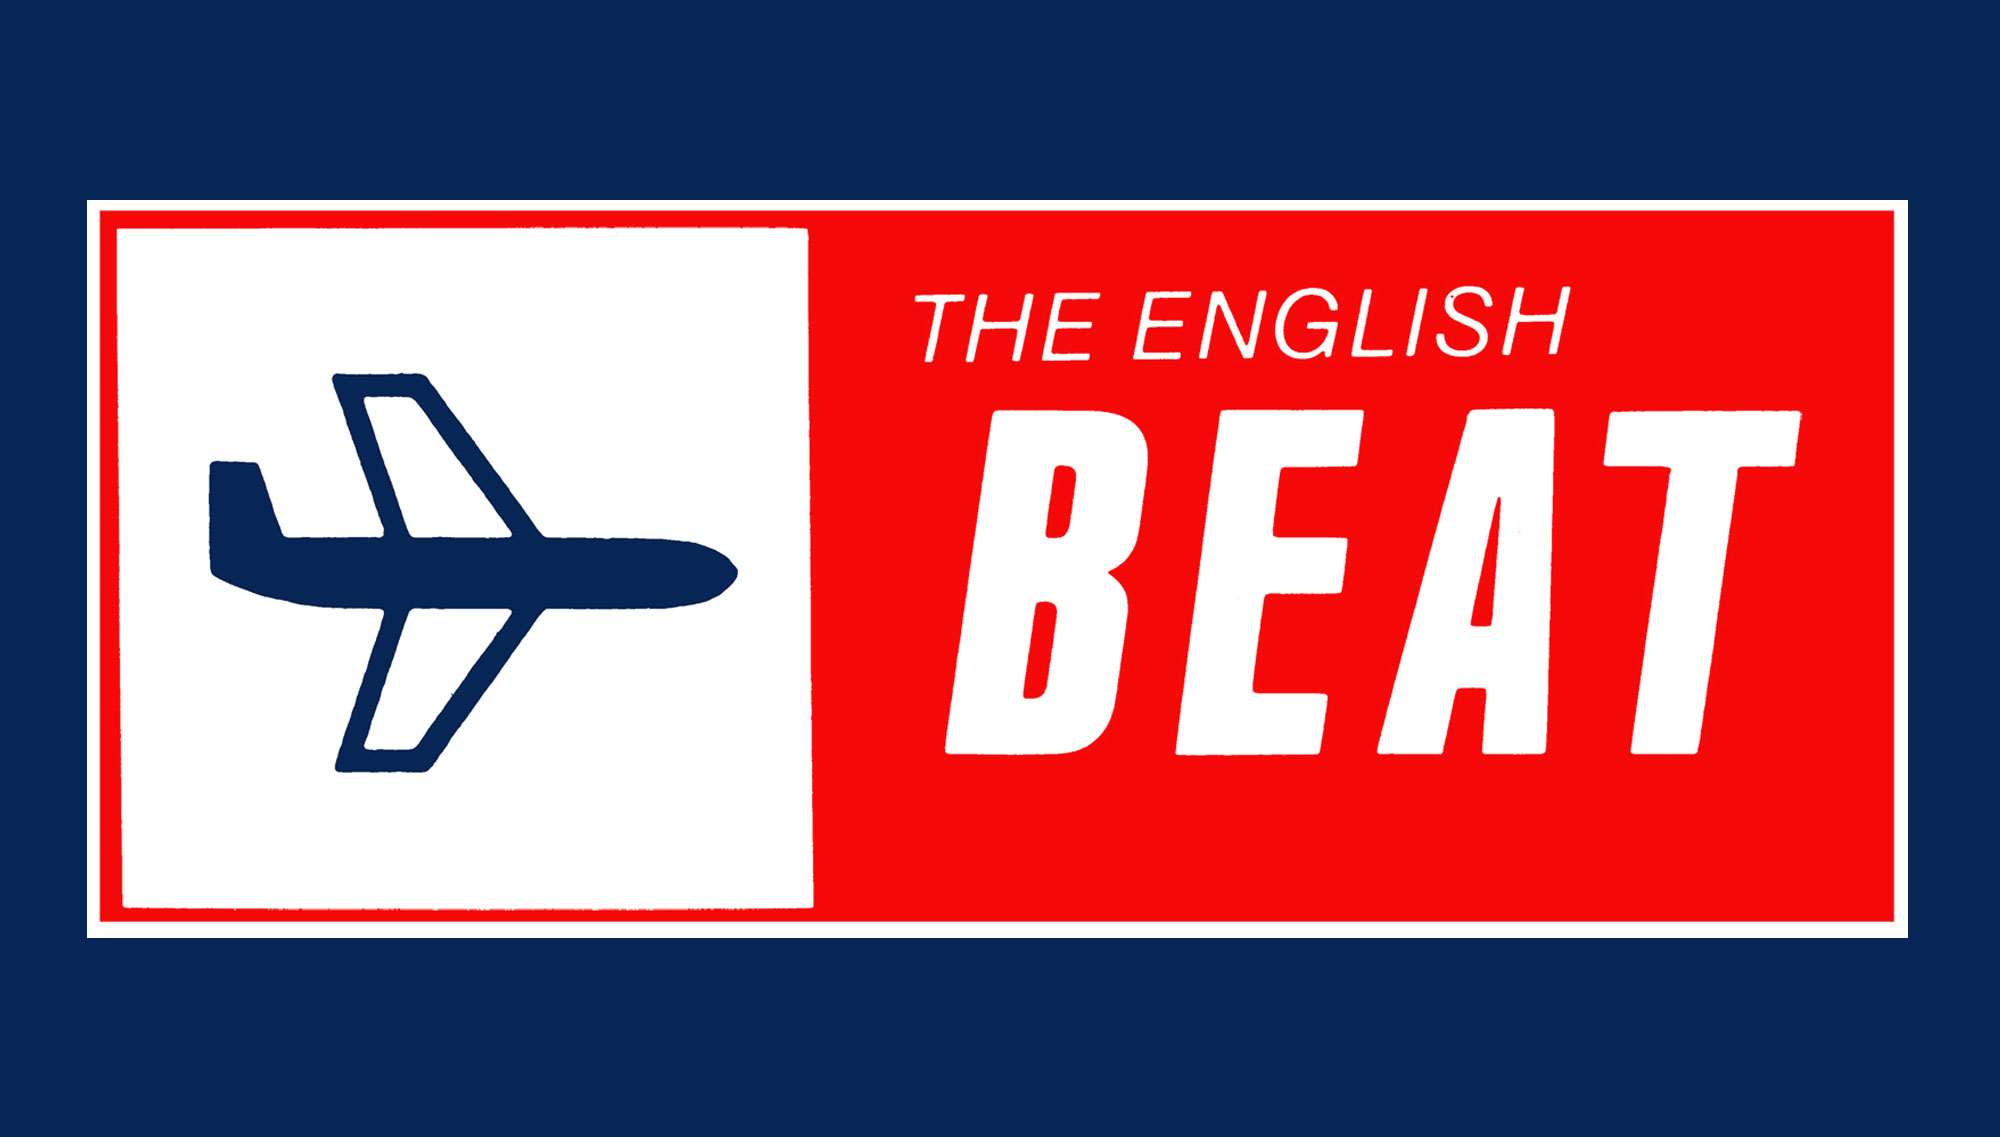 THE ENGLISH BEAT  <h5>w/ special guest The Copecetics  <h5><H5>March 24  </h5>